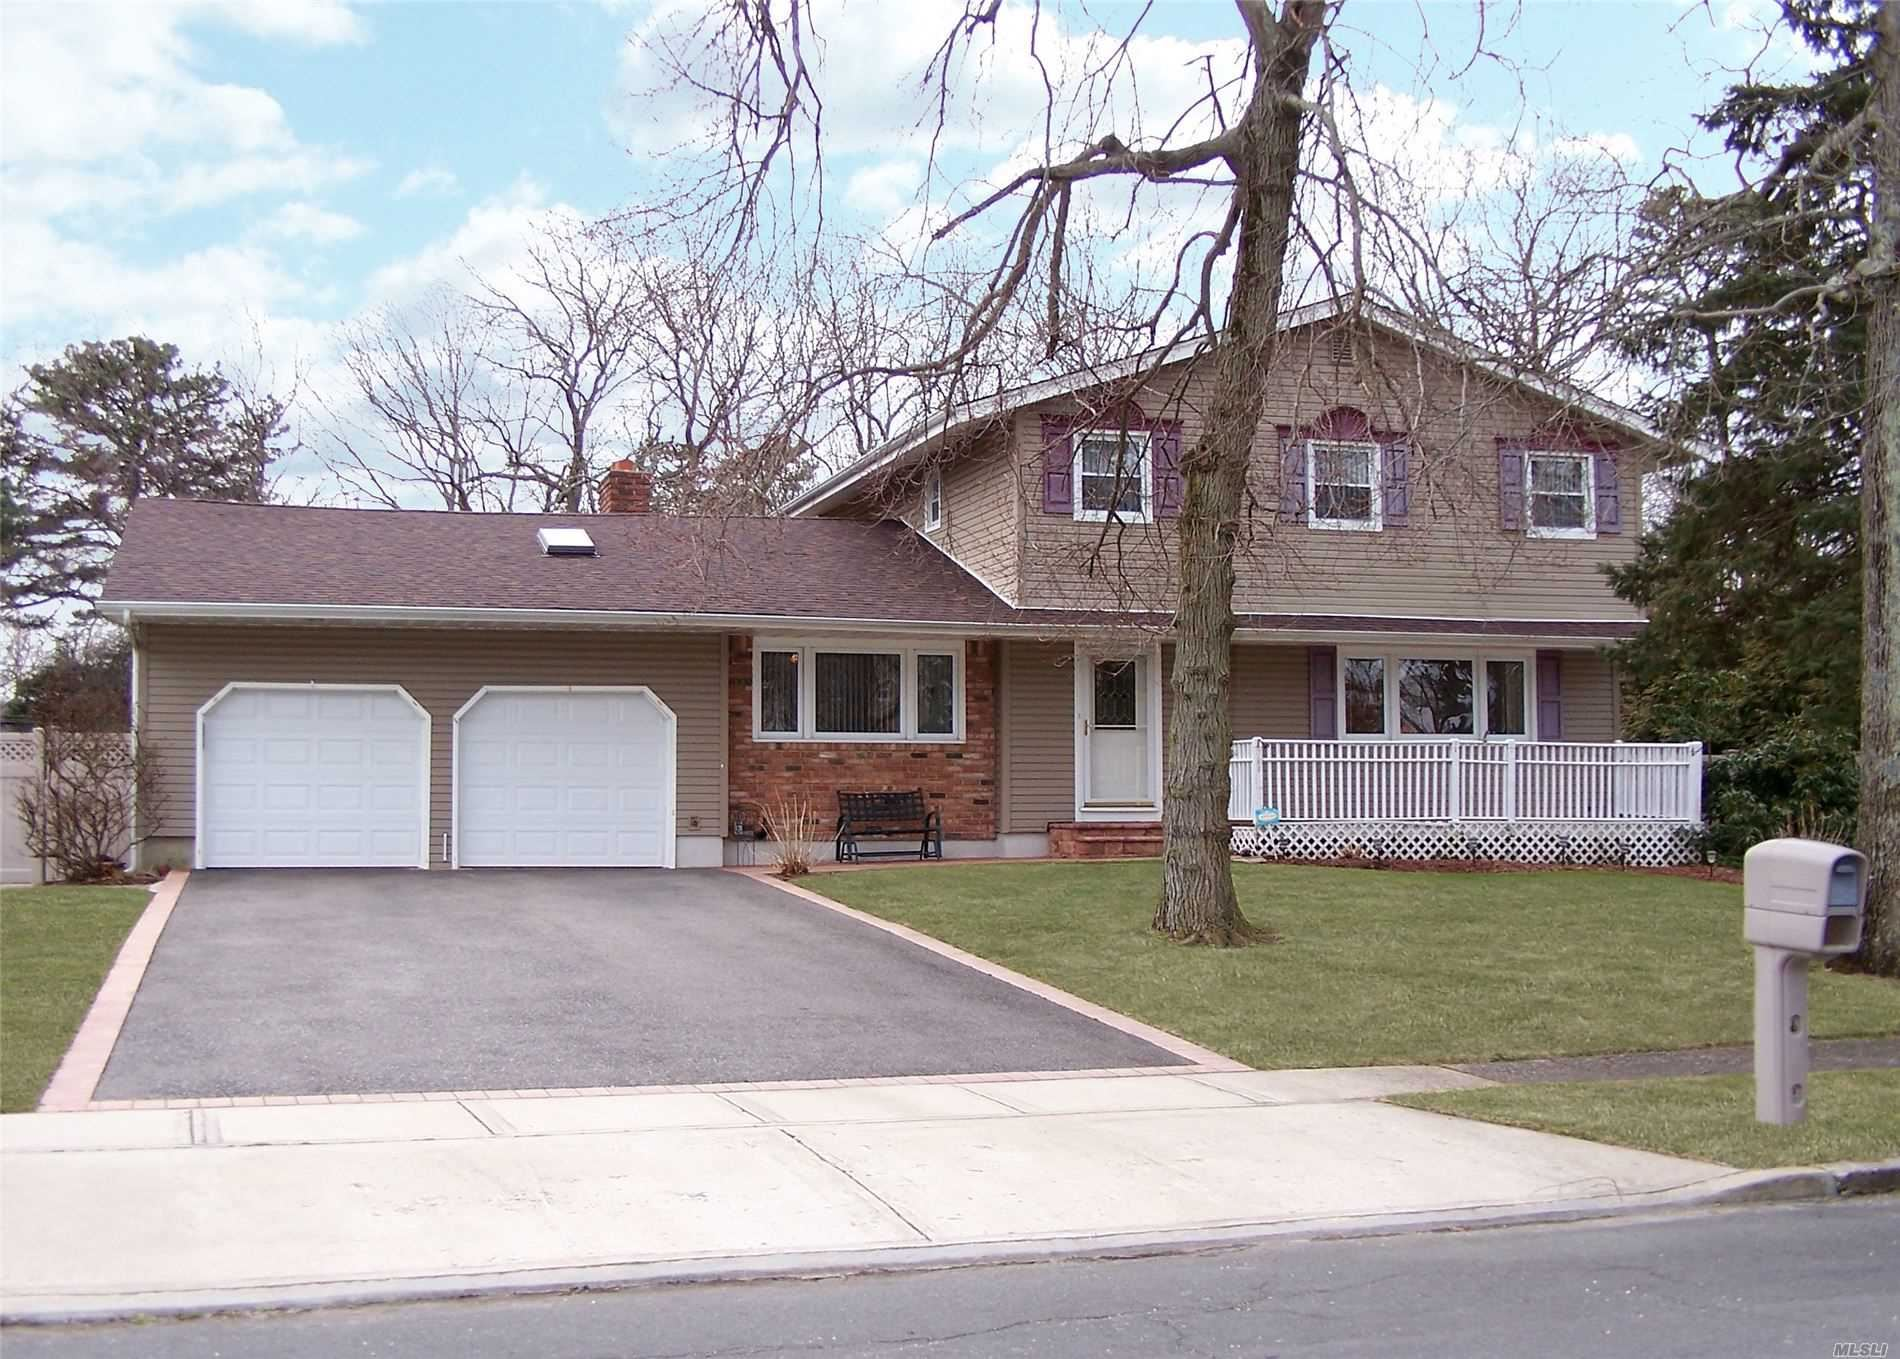 100 Steven Place, Hauppauge, NY 11788 - MLS#: 3202477